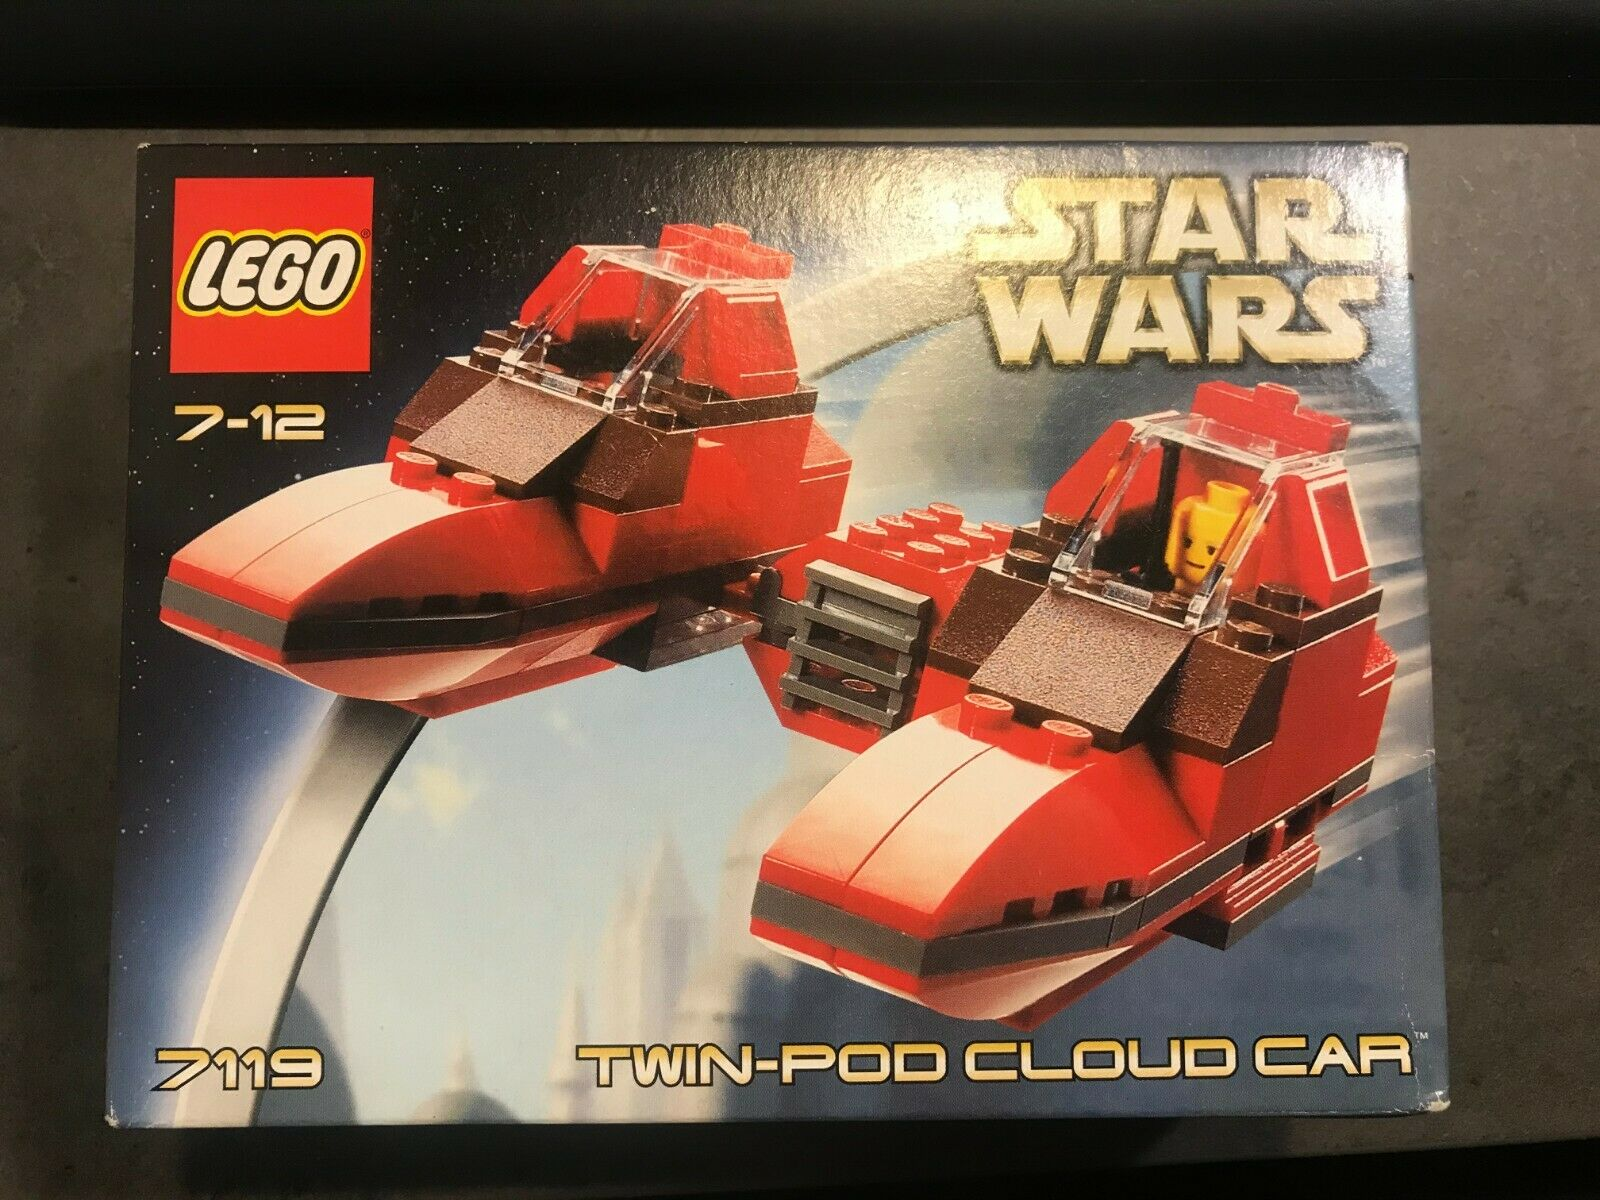 Lego Star Wars 7119 Twin-Pod Cloud Car